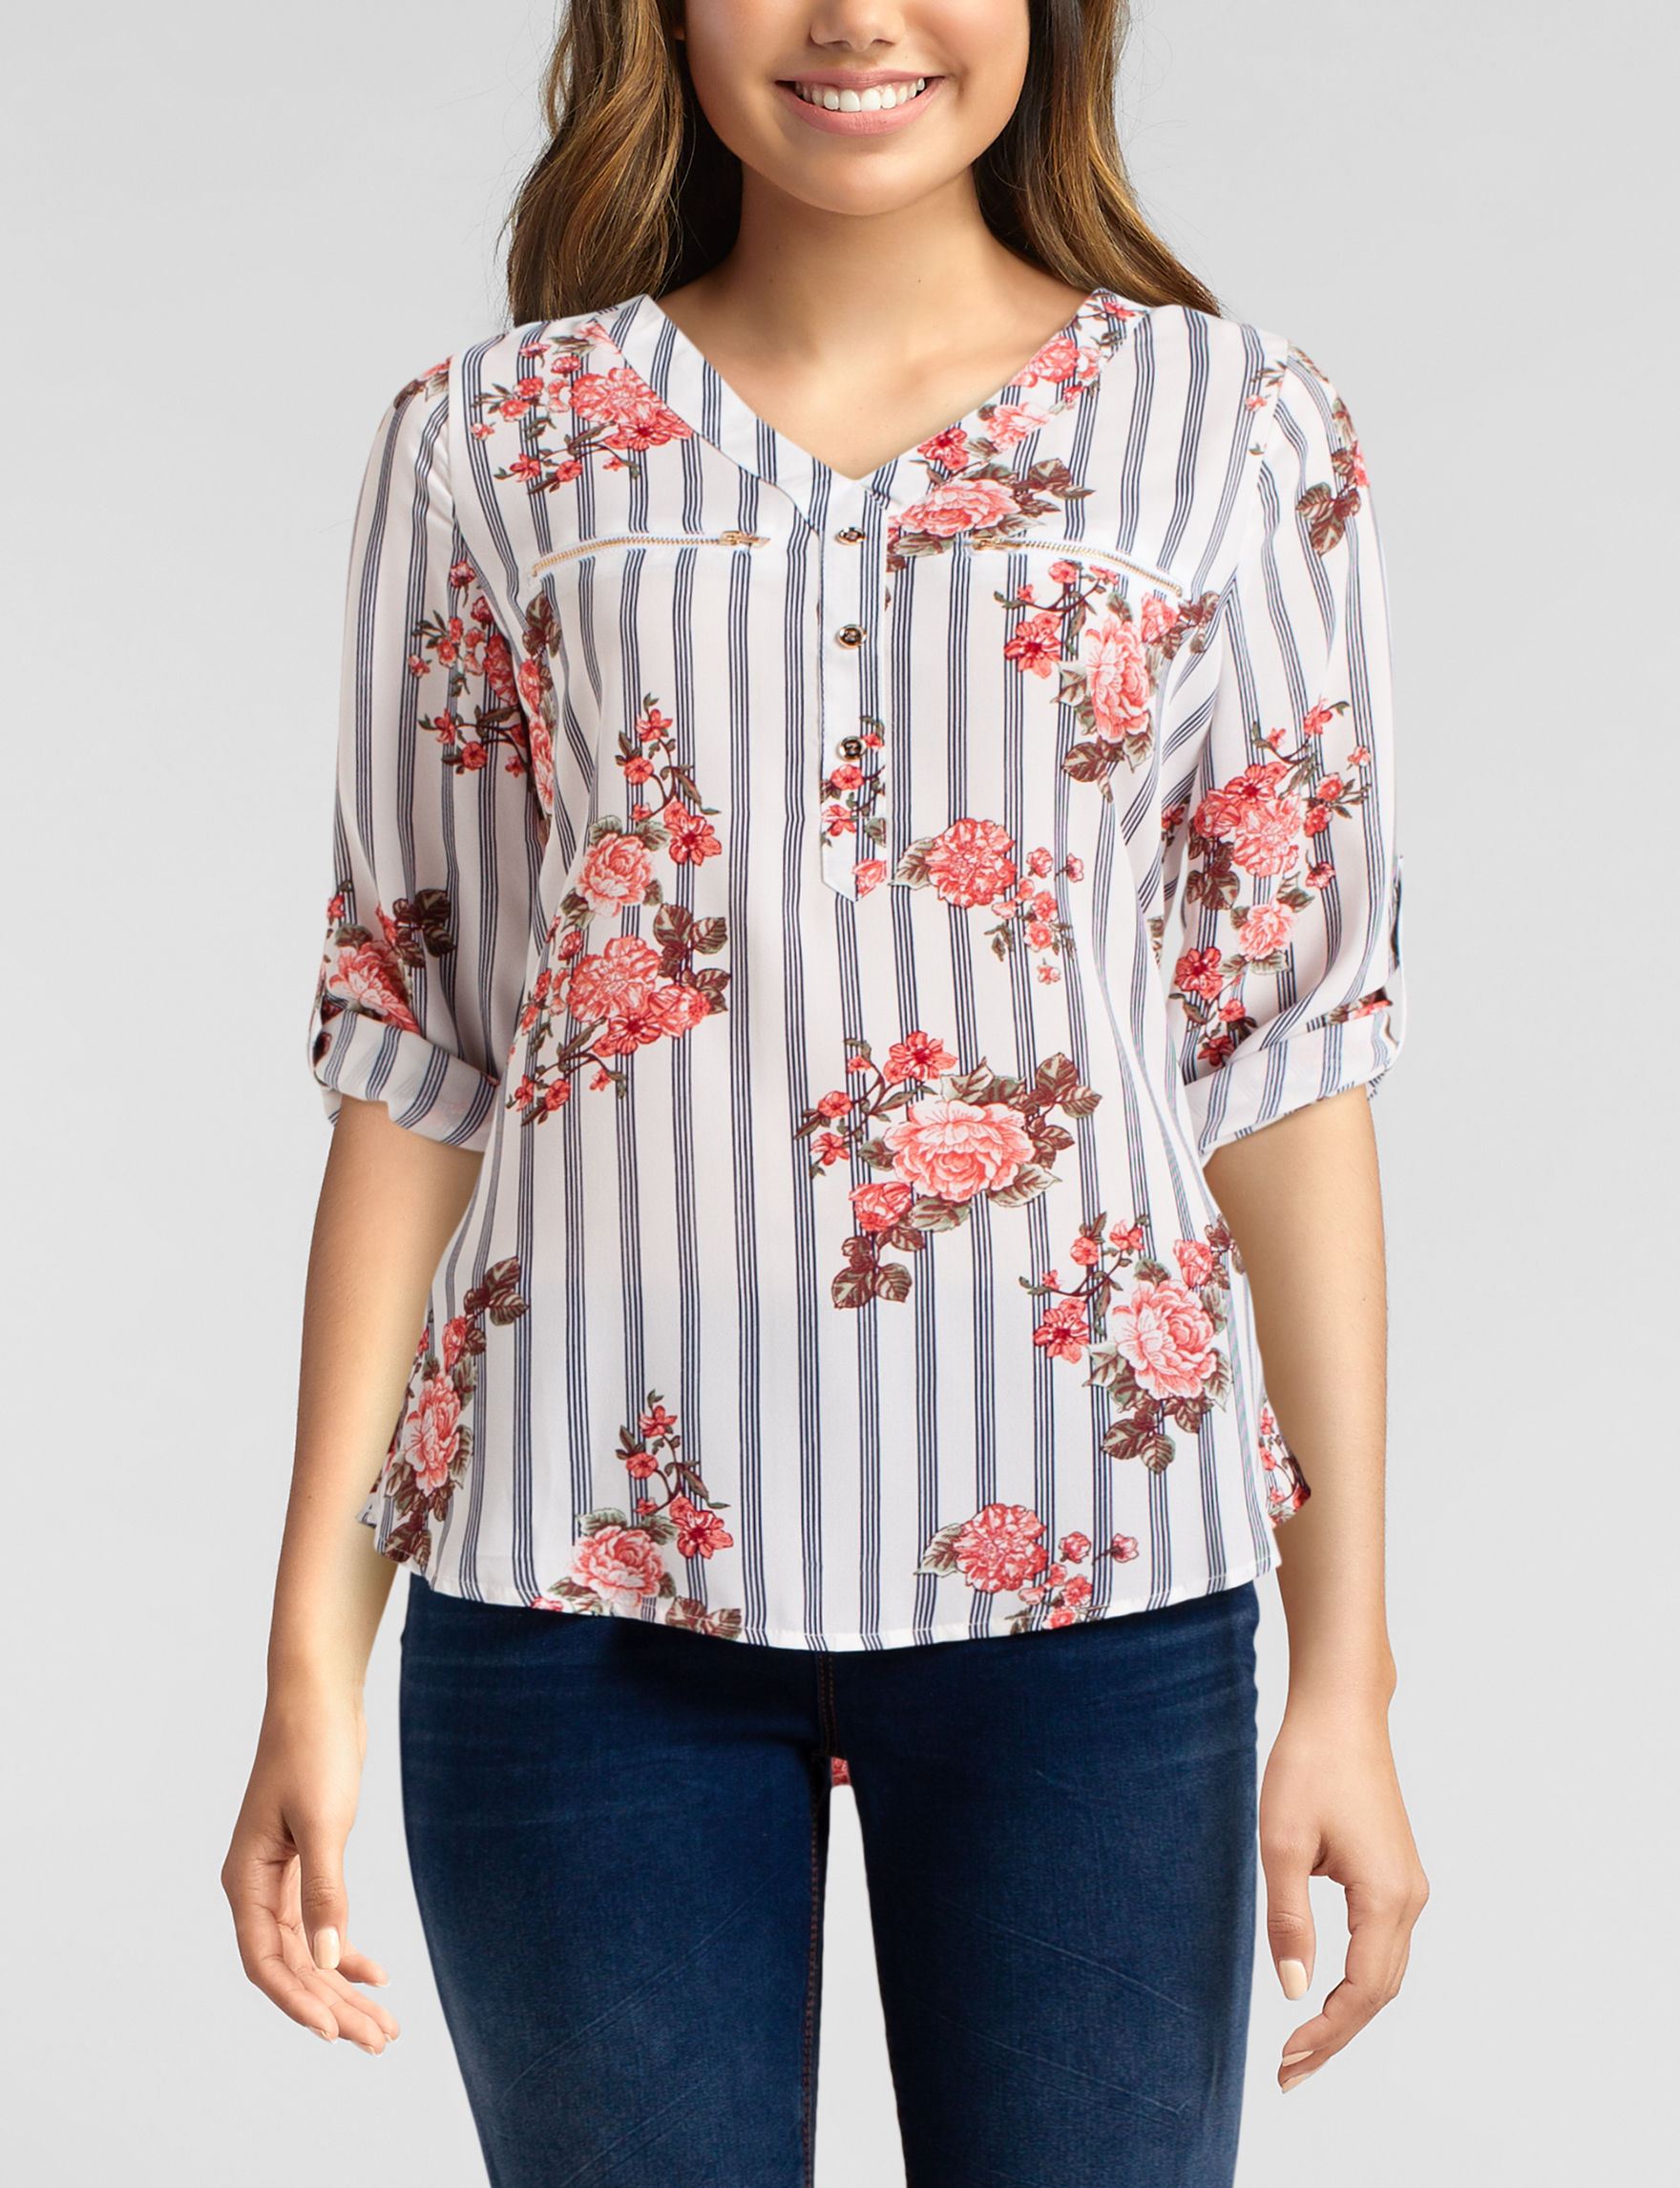 Wishful Park White Floral Shirts & Blouses